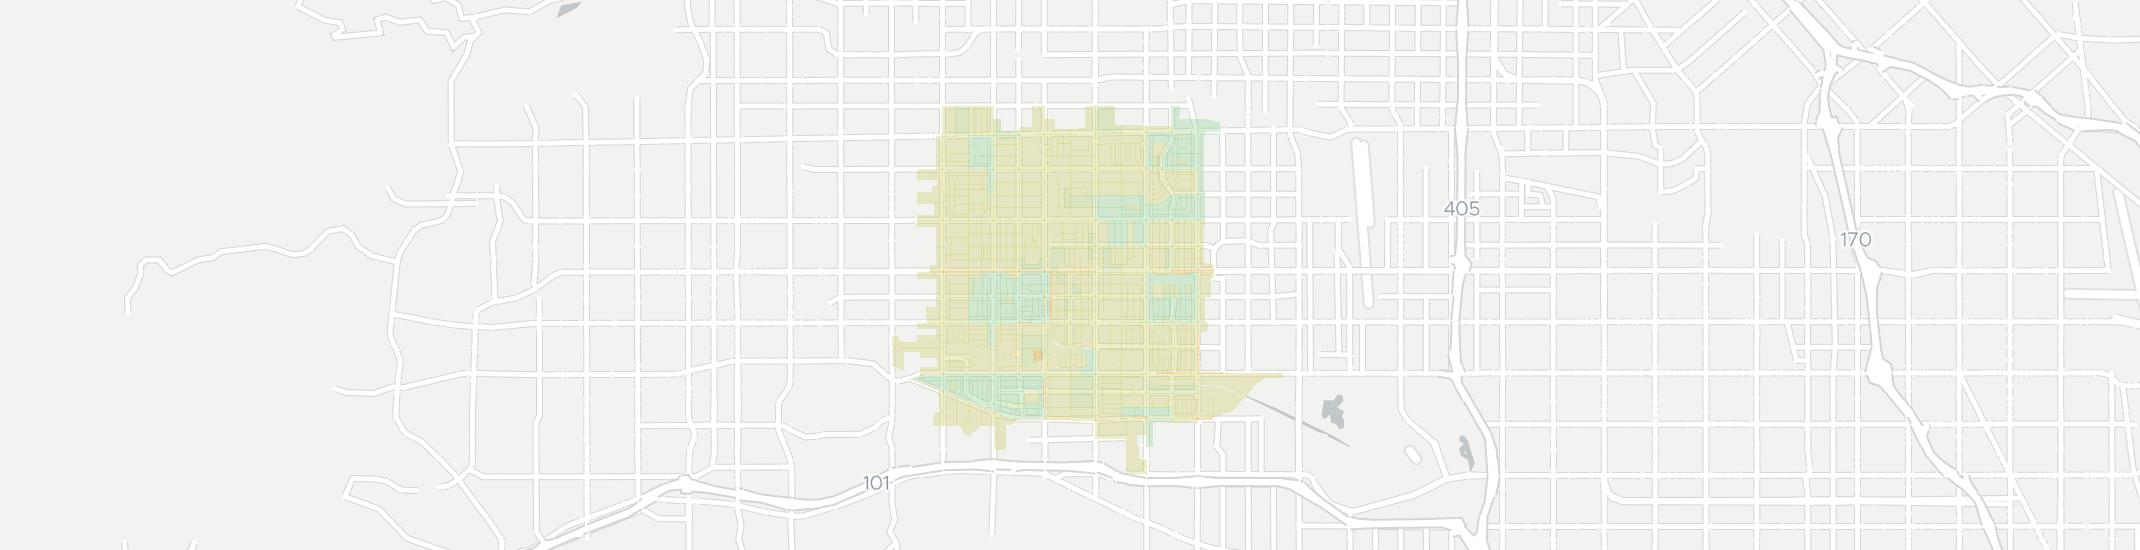 Reseda Internet Competition Map. Click for interactive map.